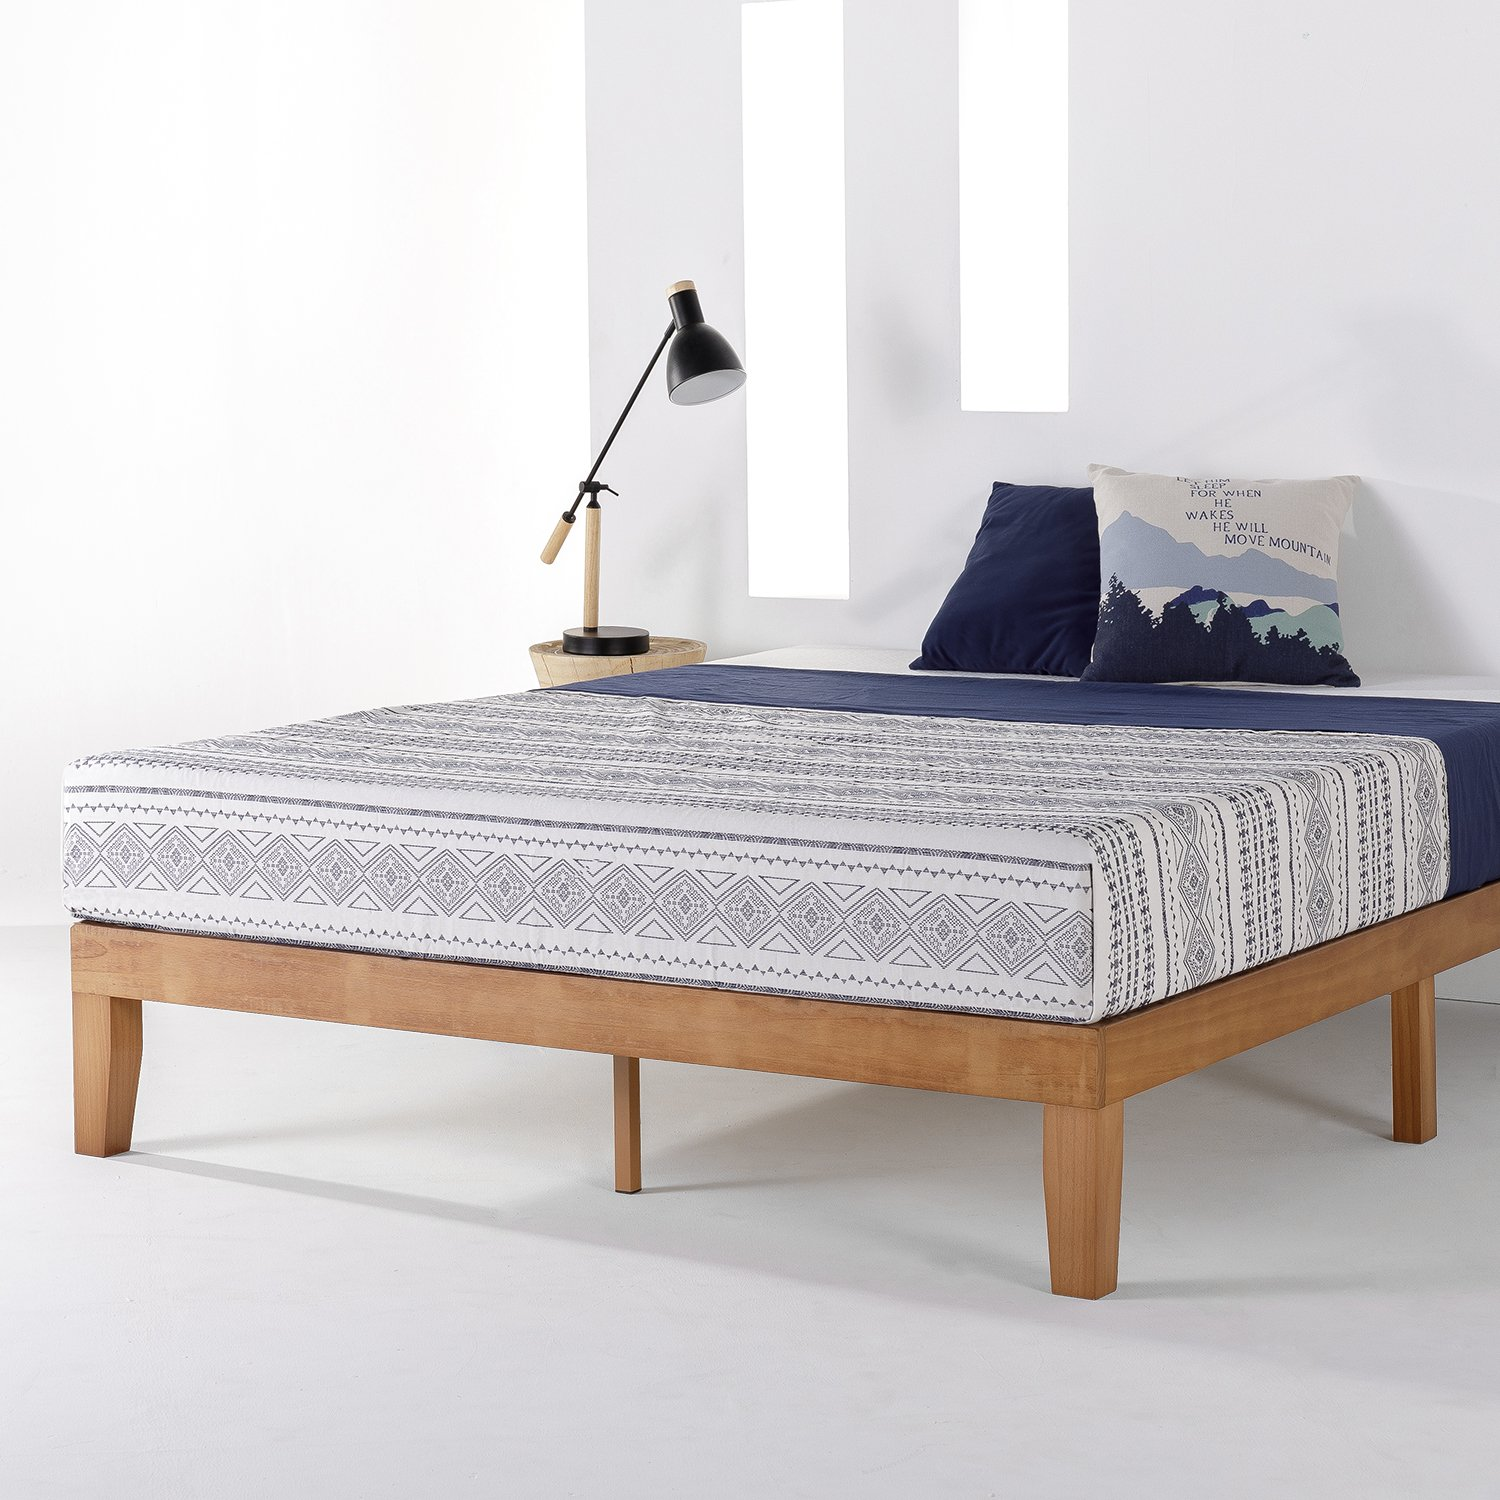 Mellow 12'' Classic Soild Wood Platform Bed Frame w/Wooden Slats (No Box Spring Needed) Queen Natural by Mellow